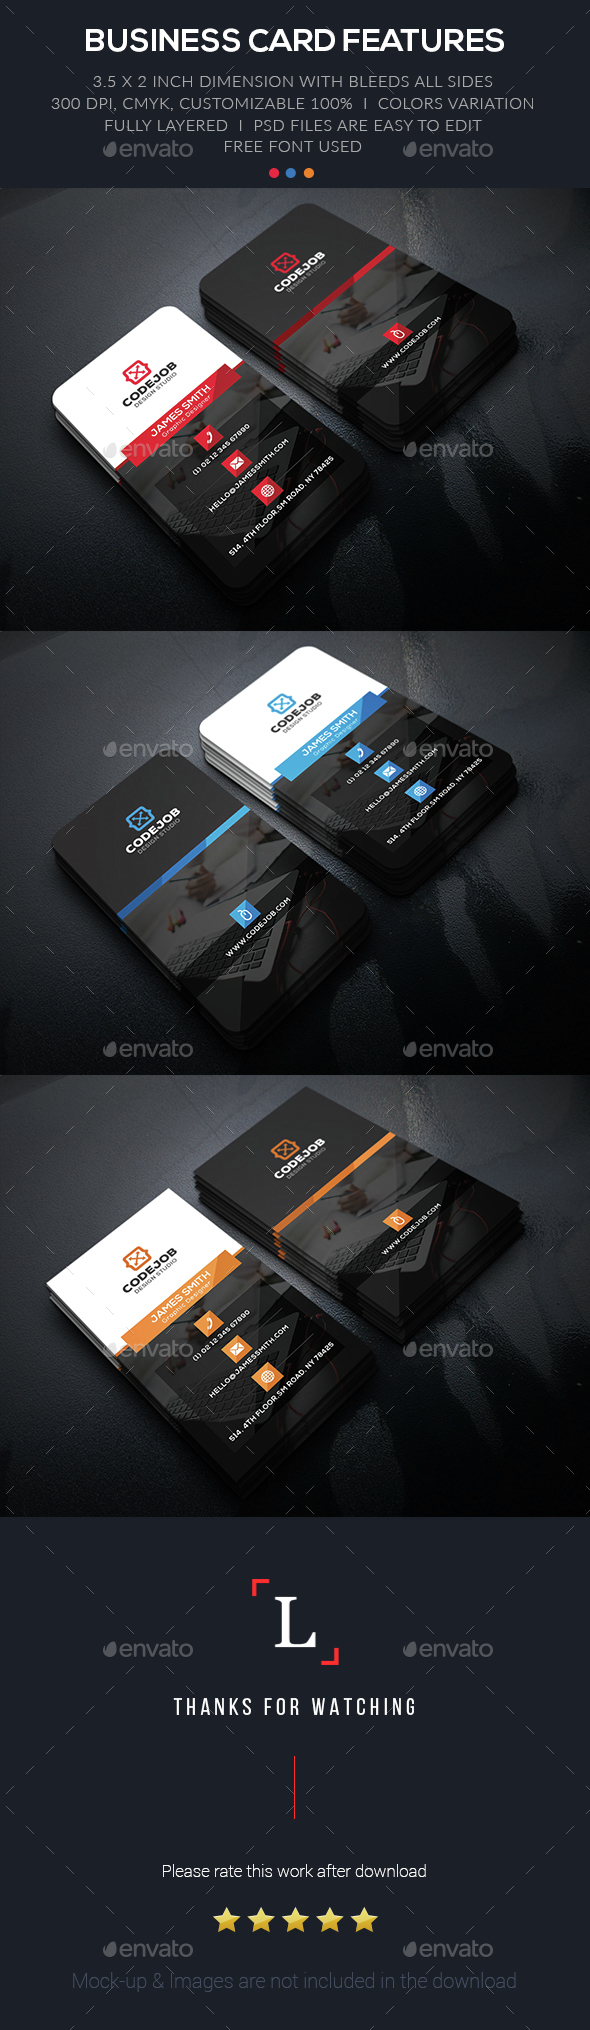 Dark Corporate Business Card - Business Cards Print Templates